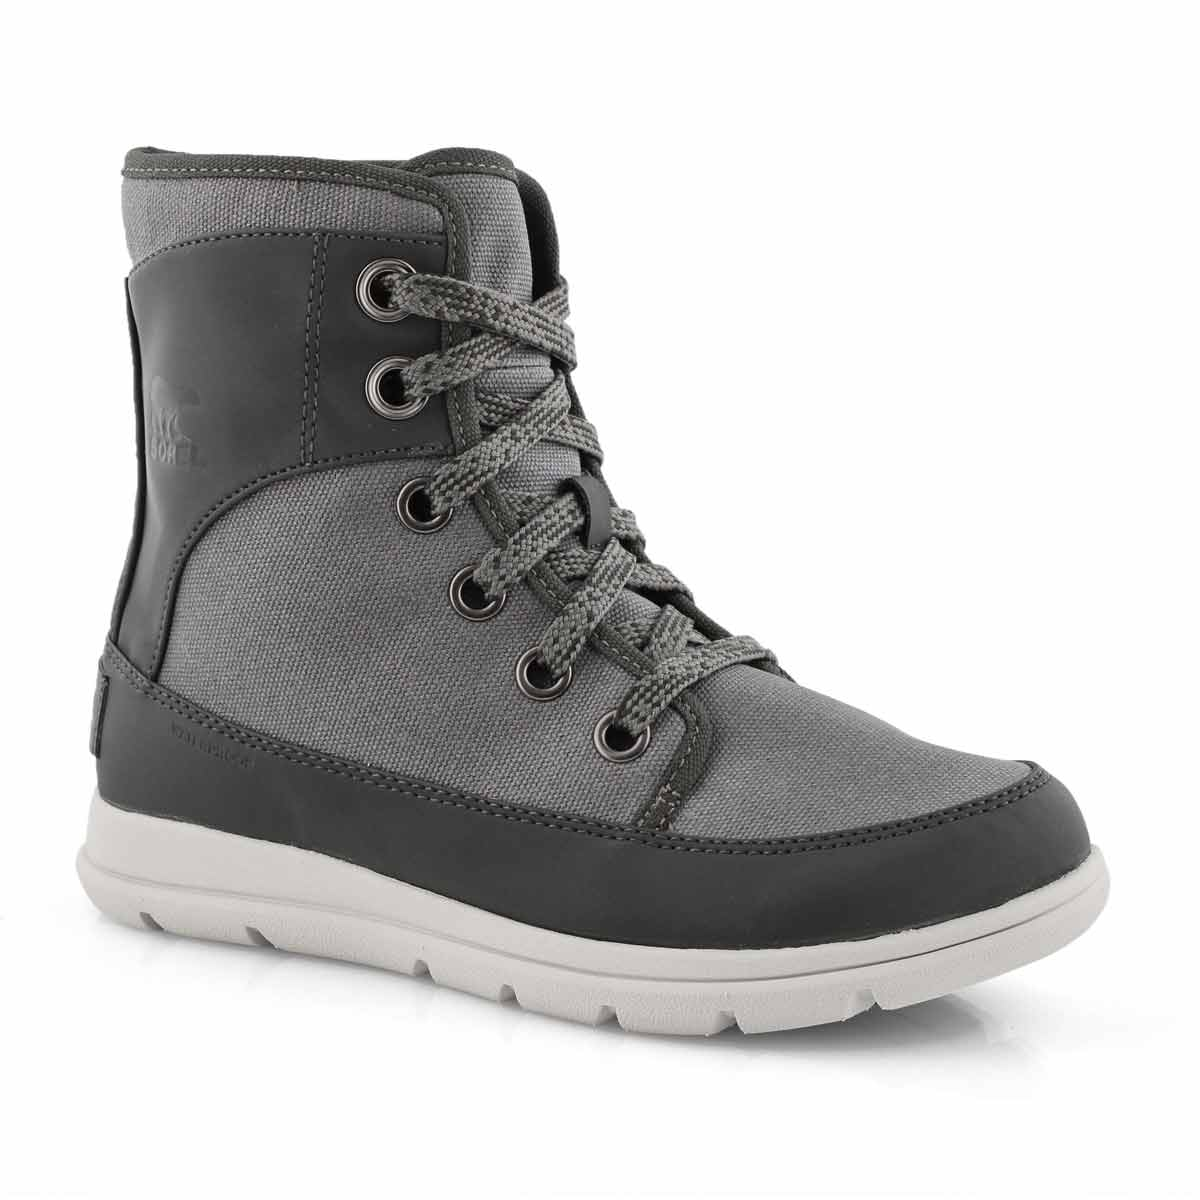 Lds Explorer 1964 quarry wtpf boot